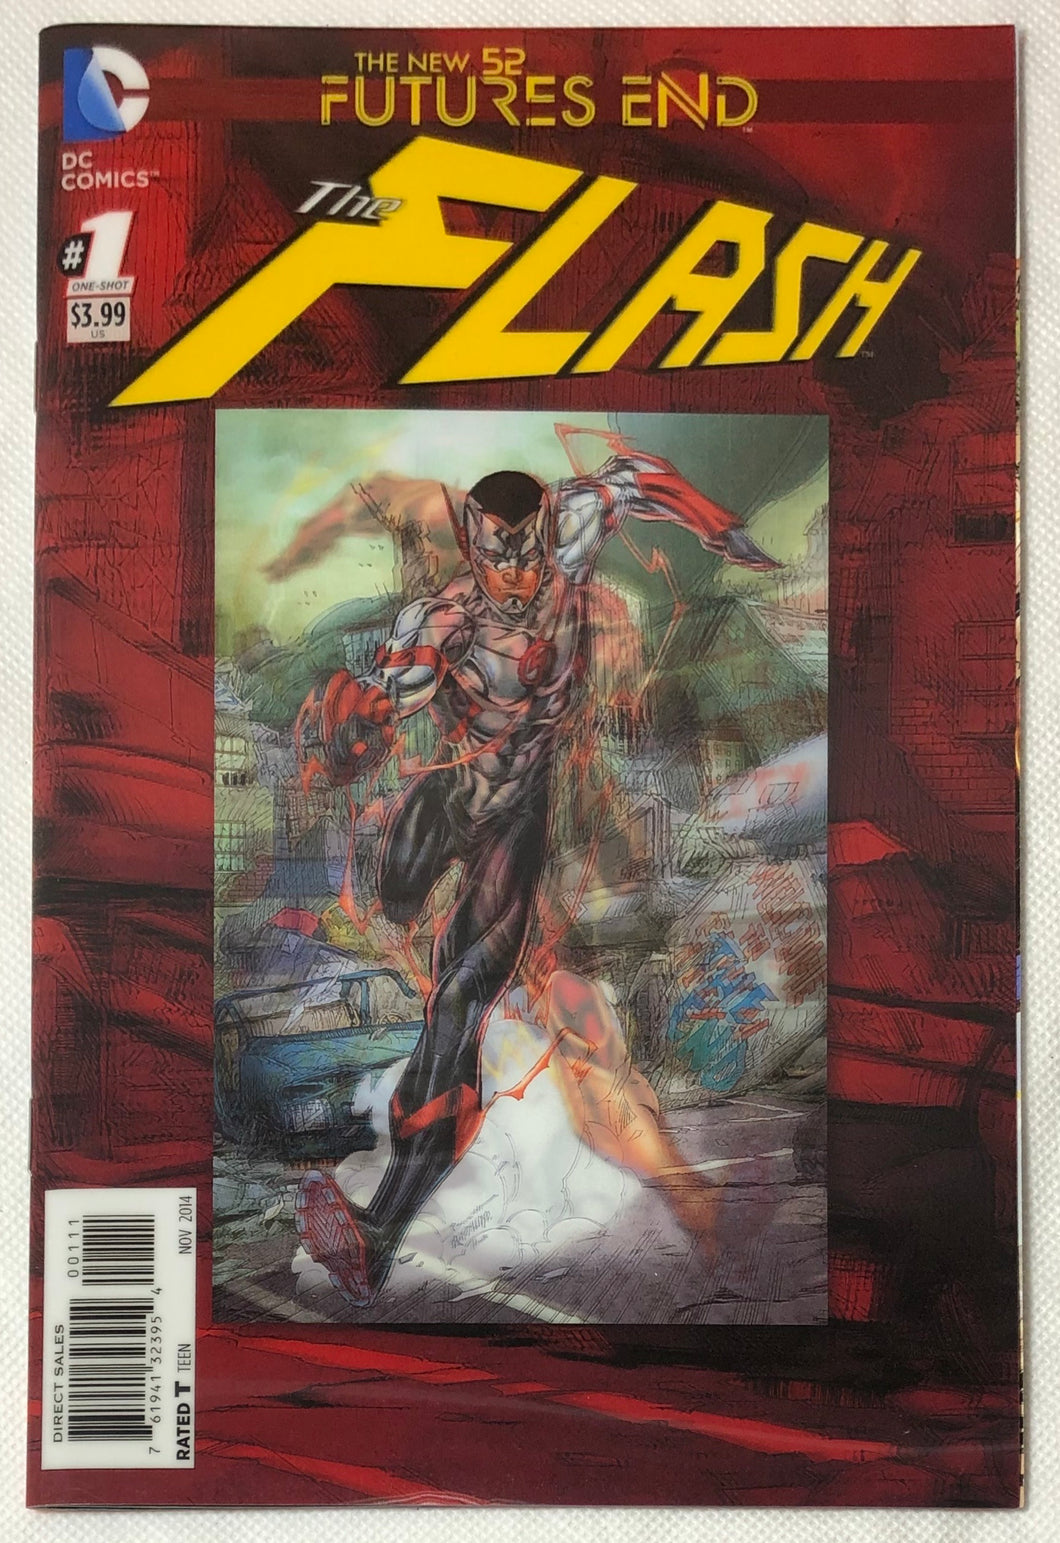 The New 52 Futures End The Flash #1 Lenticular Cover - Demize Collectibles LTD